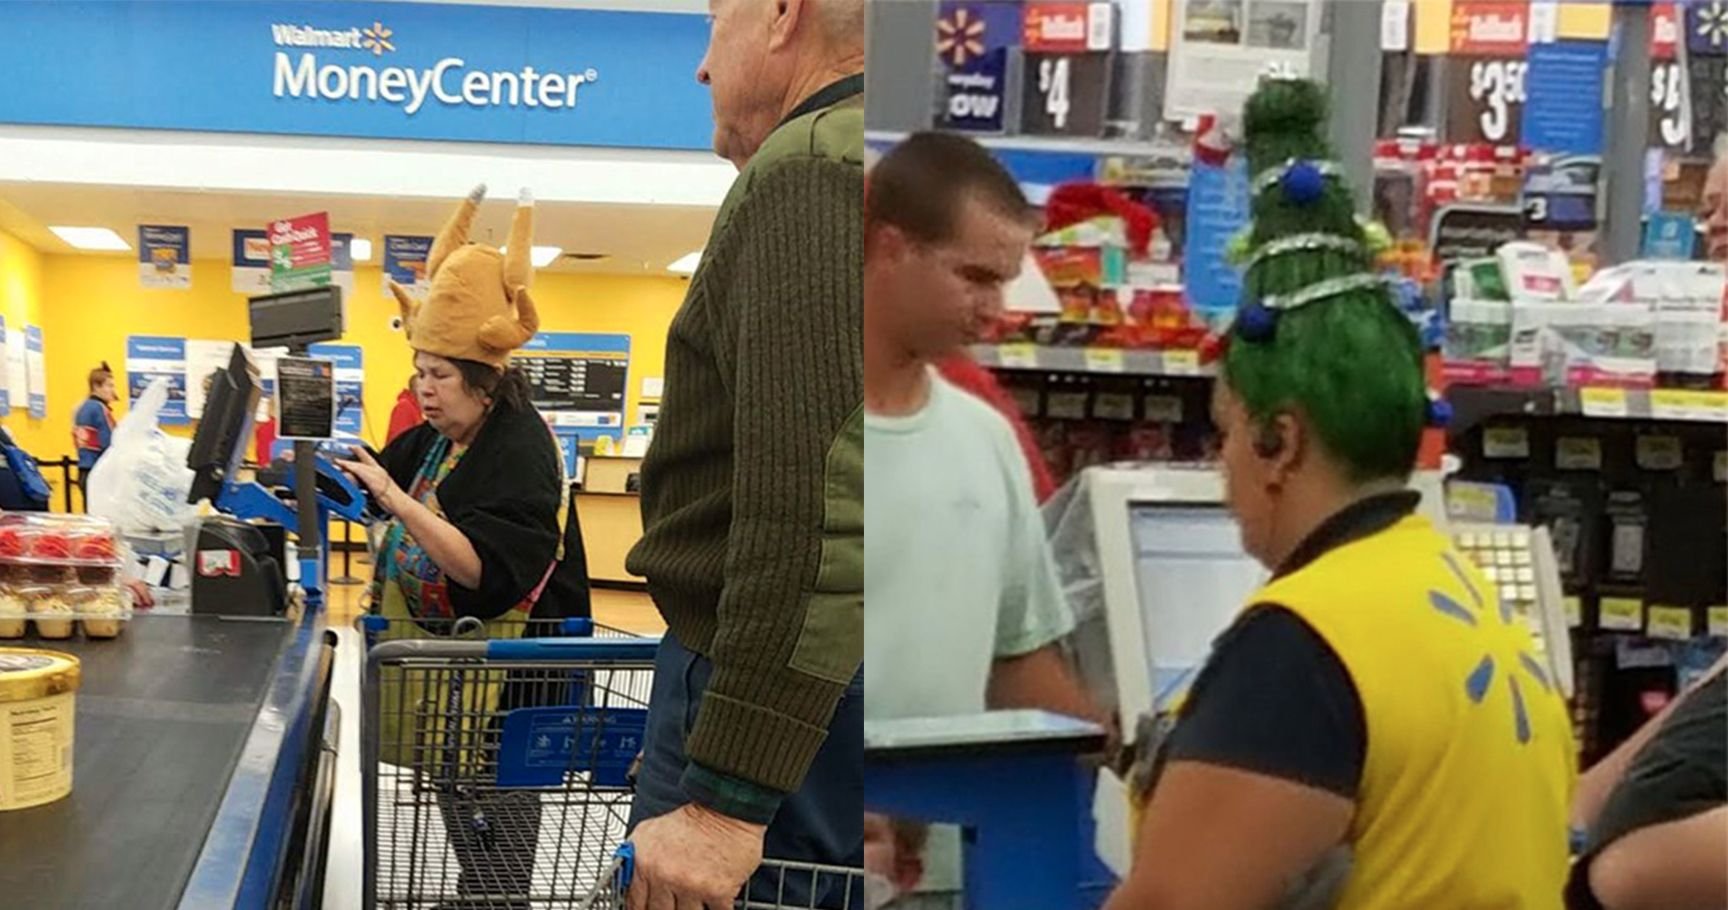 eaa503cb2d9 15 Unbelievable Things People ACTUALLY Wore To Walmart